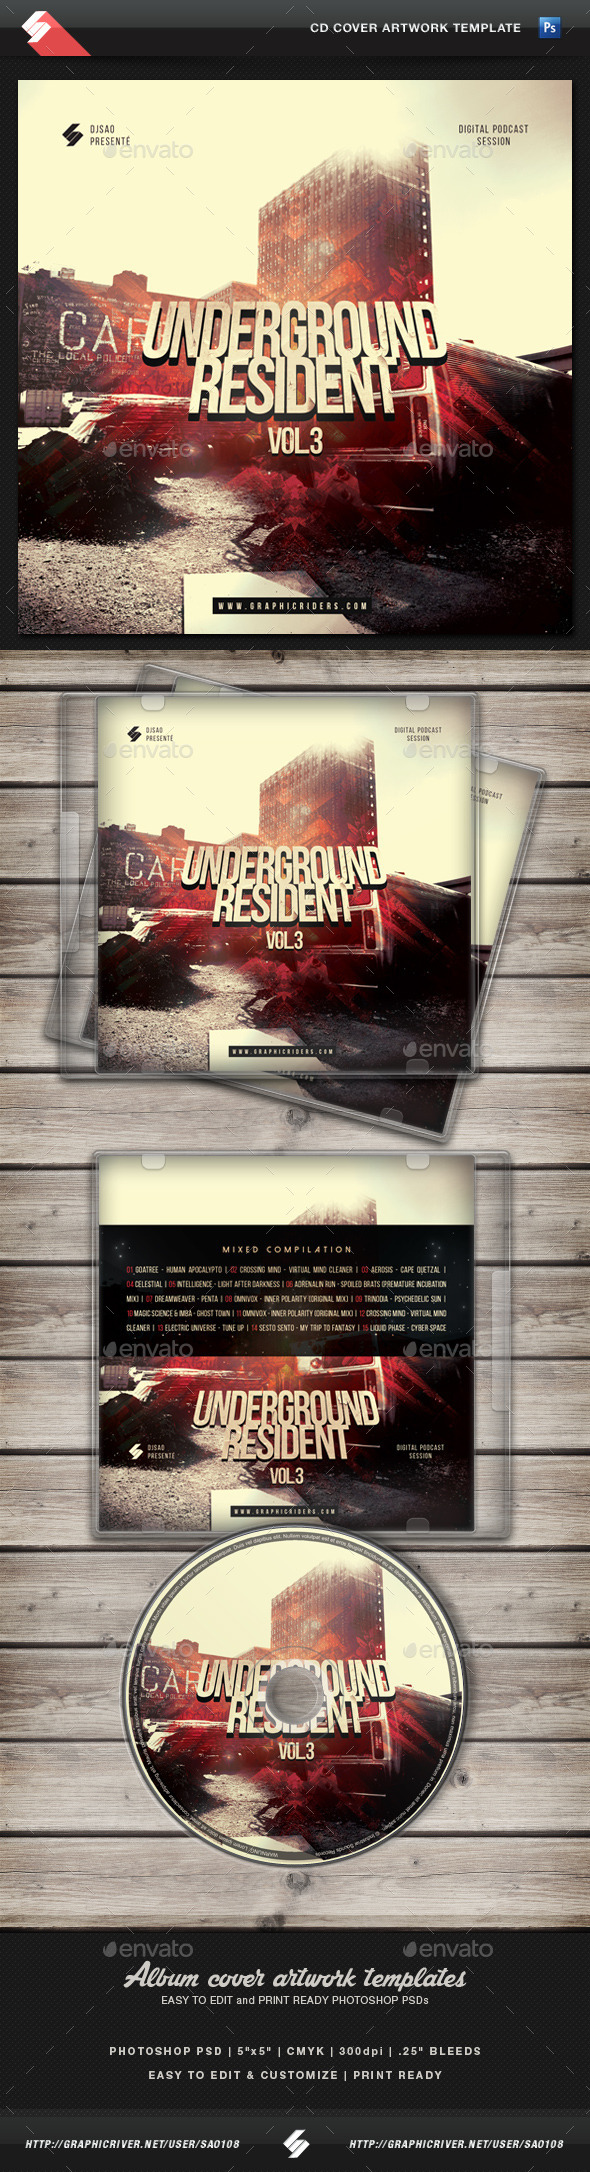 Underground Resident vol.3 - CD Cover Template  - CD & DVD Artwork Print Templates